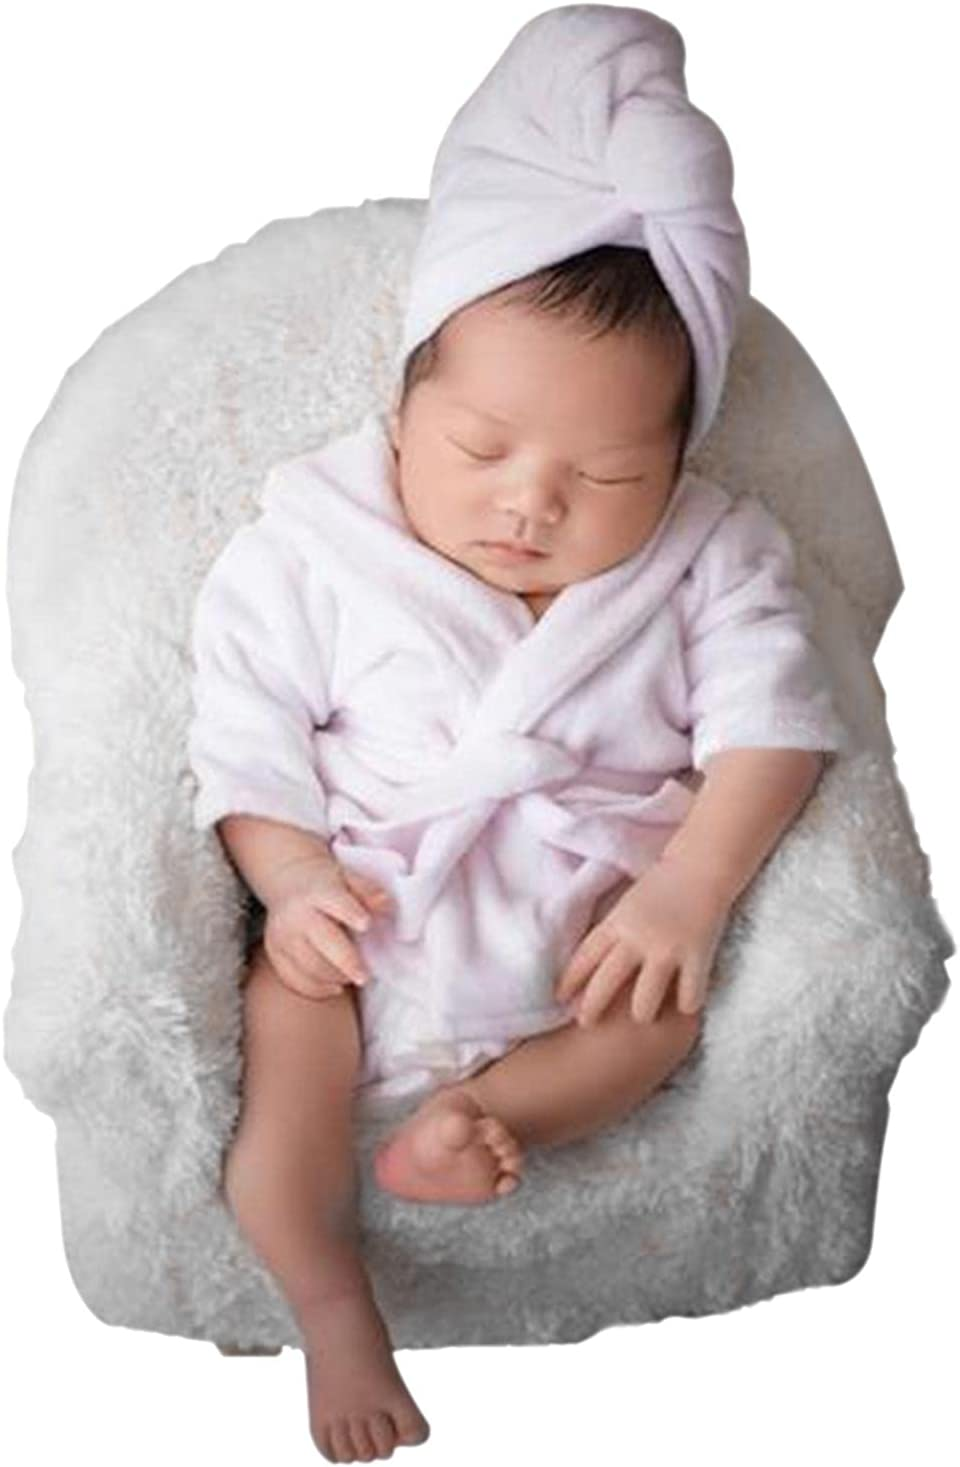 BWWNBY Baby Manufacturer regenerated product Mail order cheap Photography Sofa Small Newborn Shooting Chair Photo